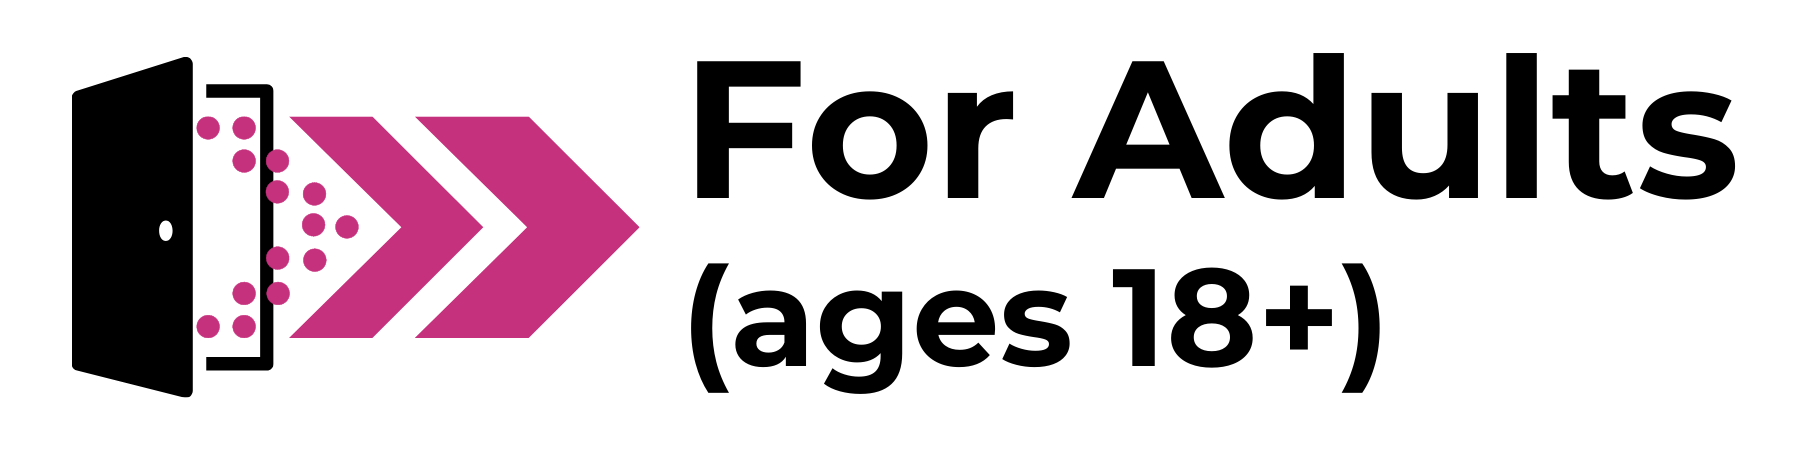 For Adults (ages 18+)